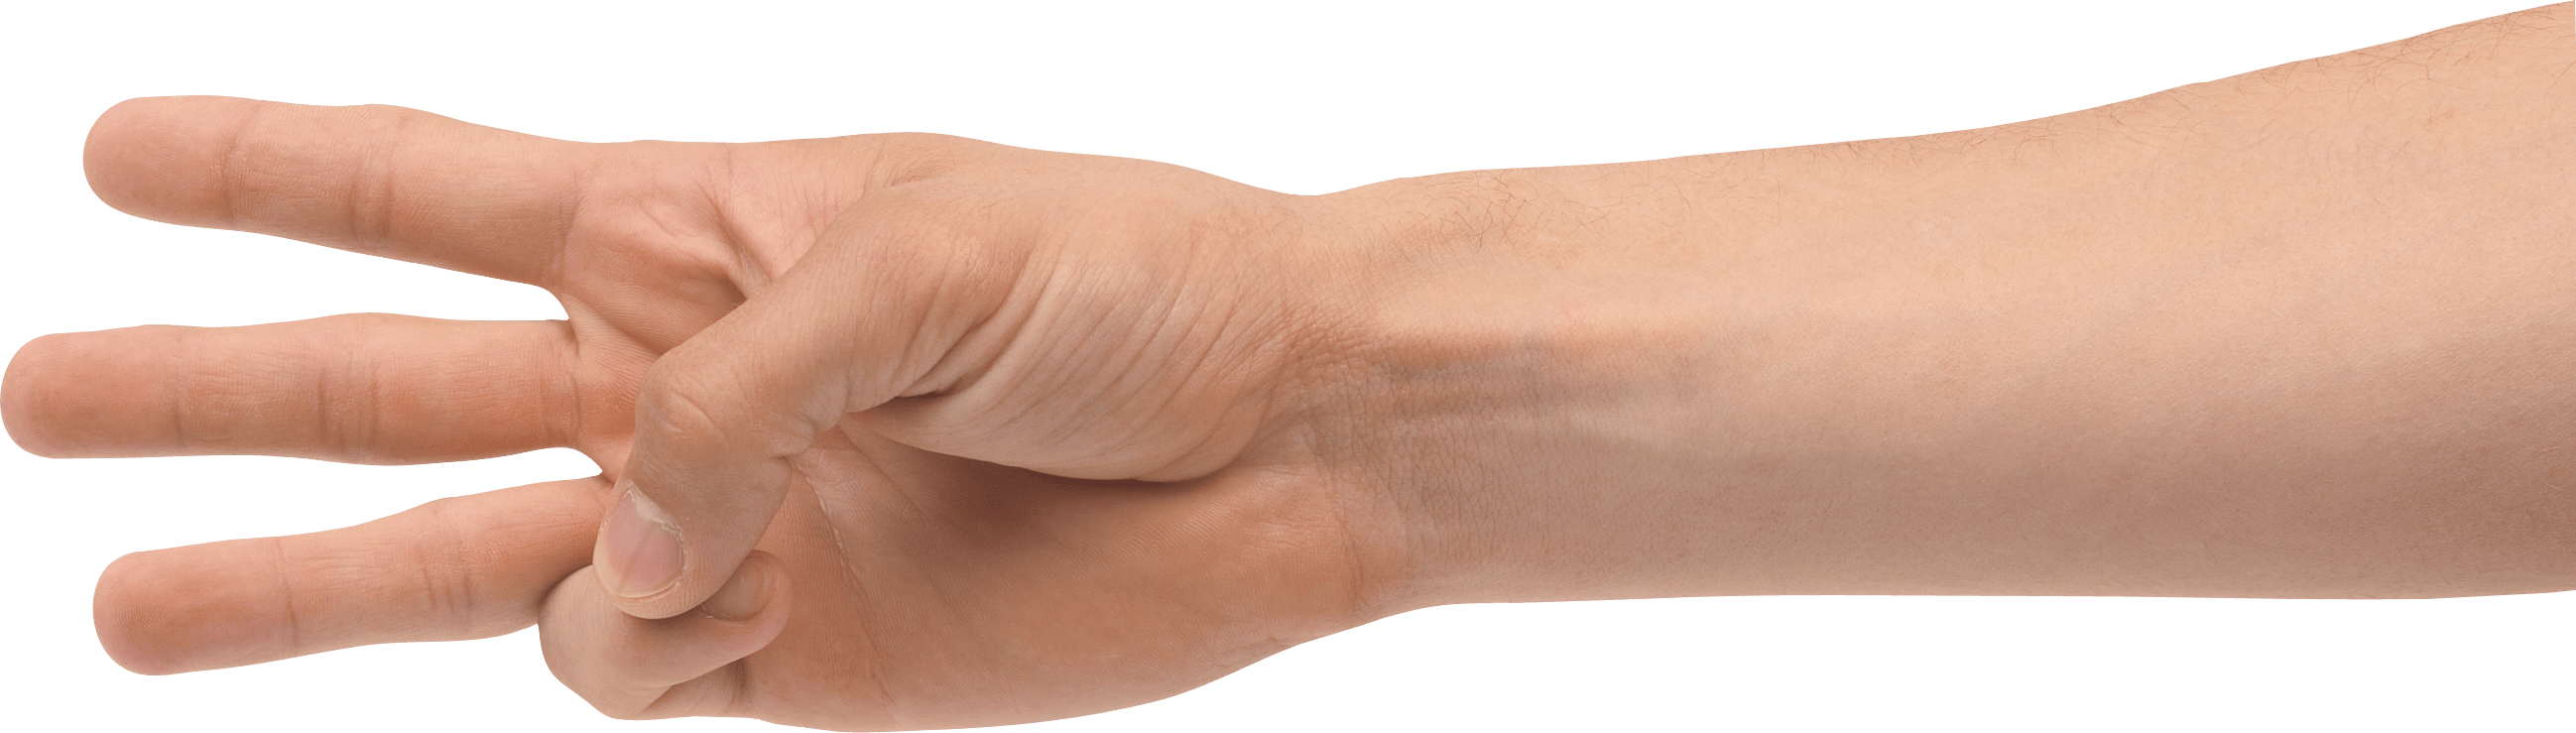 Three Finger Hand Hands Png Hand Image  PNG Image